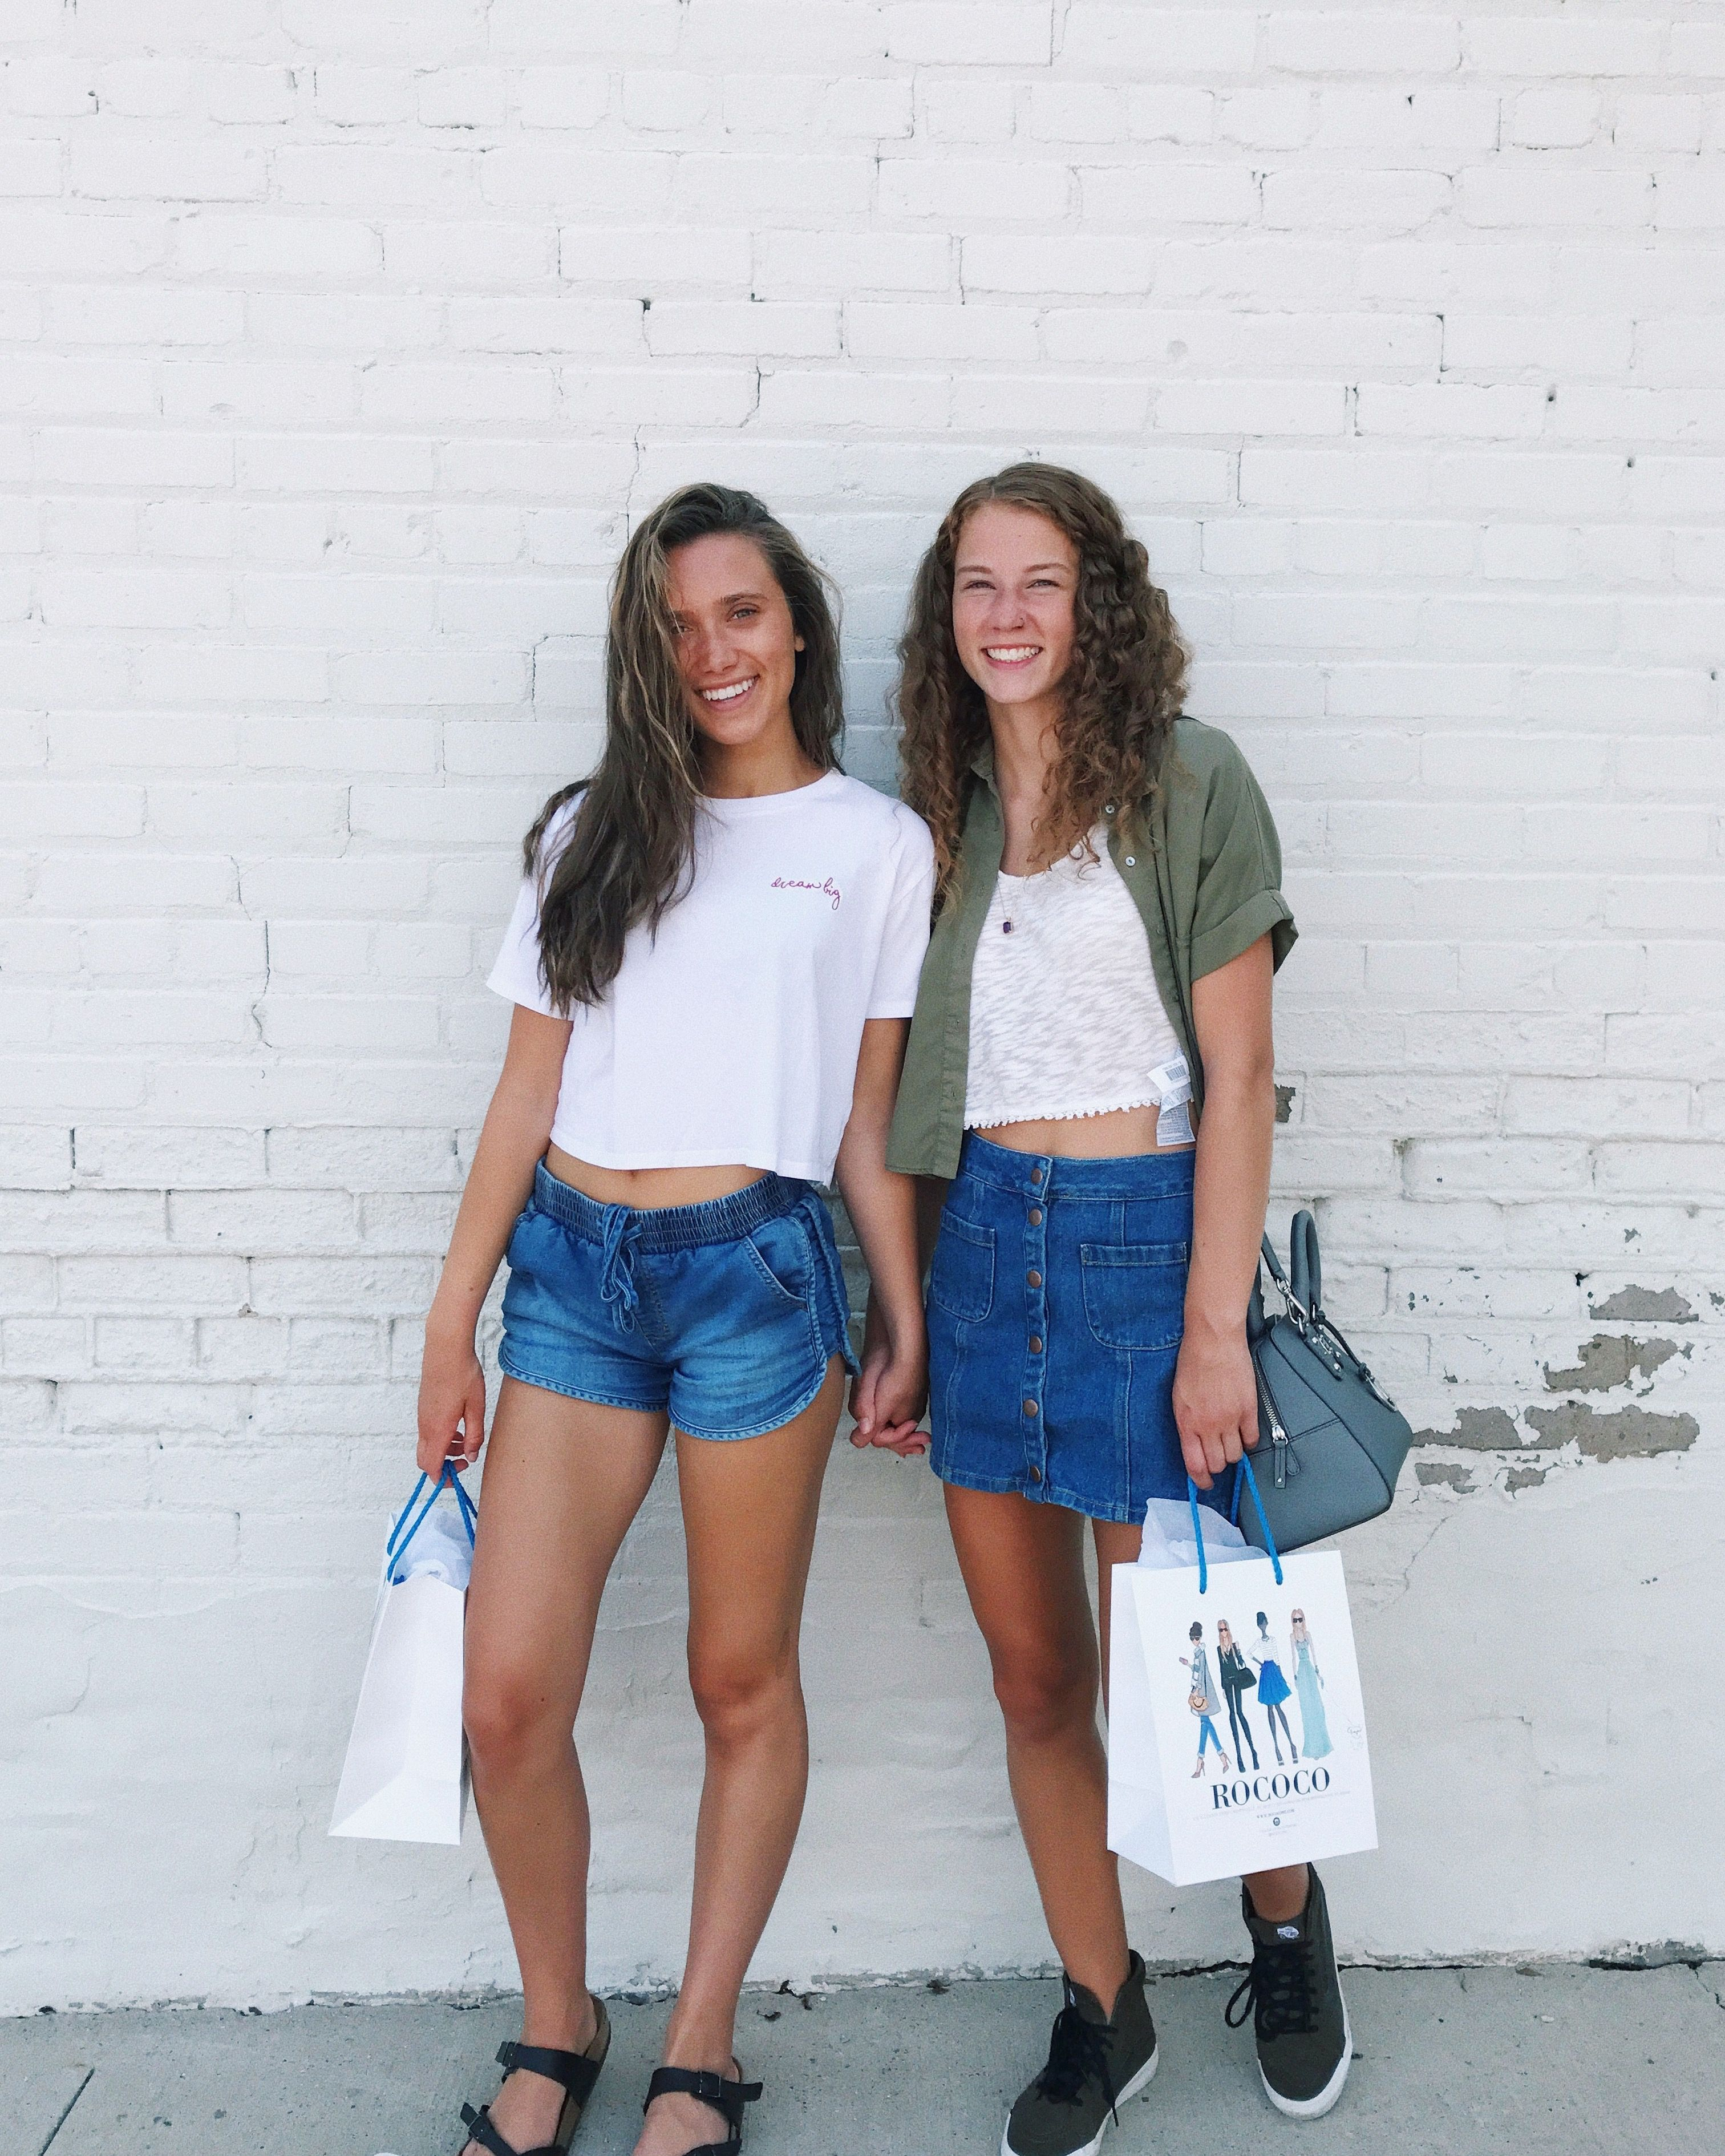 best friend shopping spree ⭐ my pic! Instagram: hannah_meloche ...